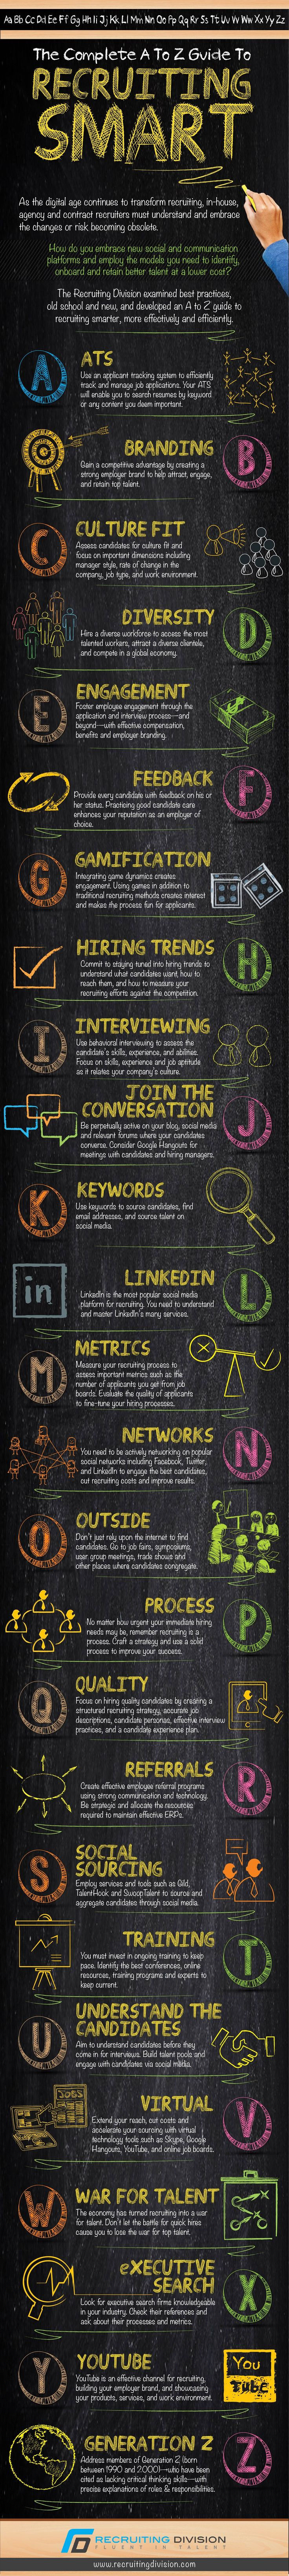 The Complete A to Z Guide To Smart Recruiting [INFOGRAPHIC] #veredus